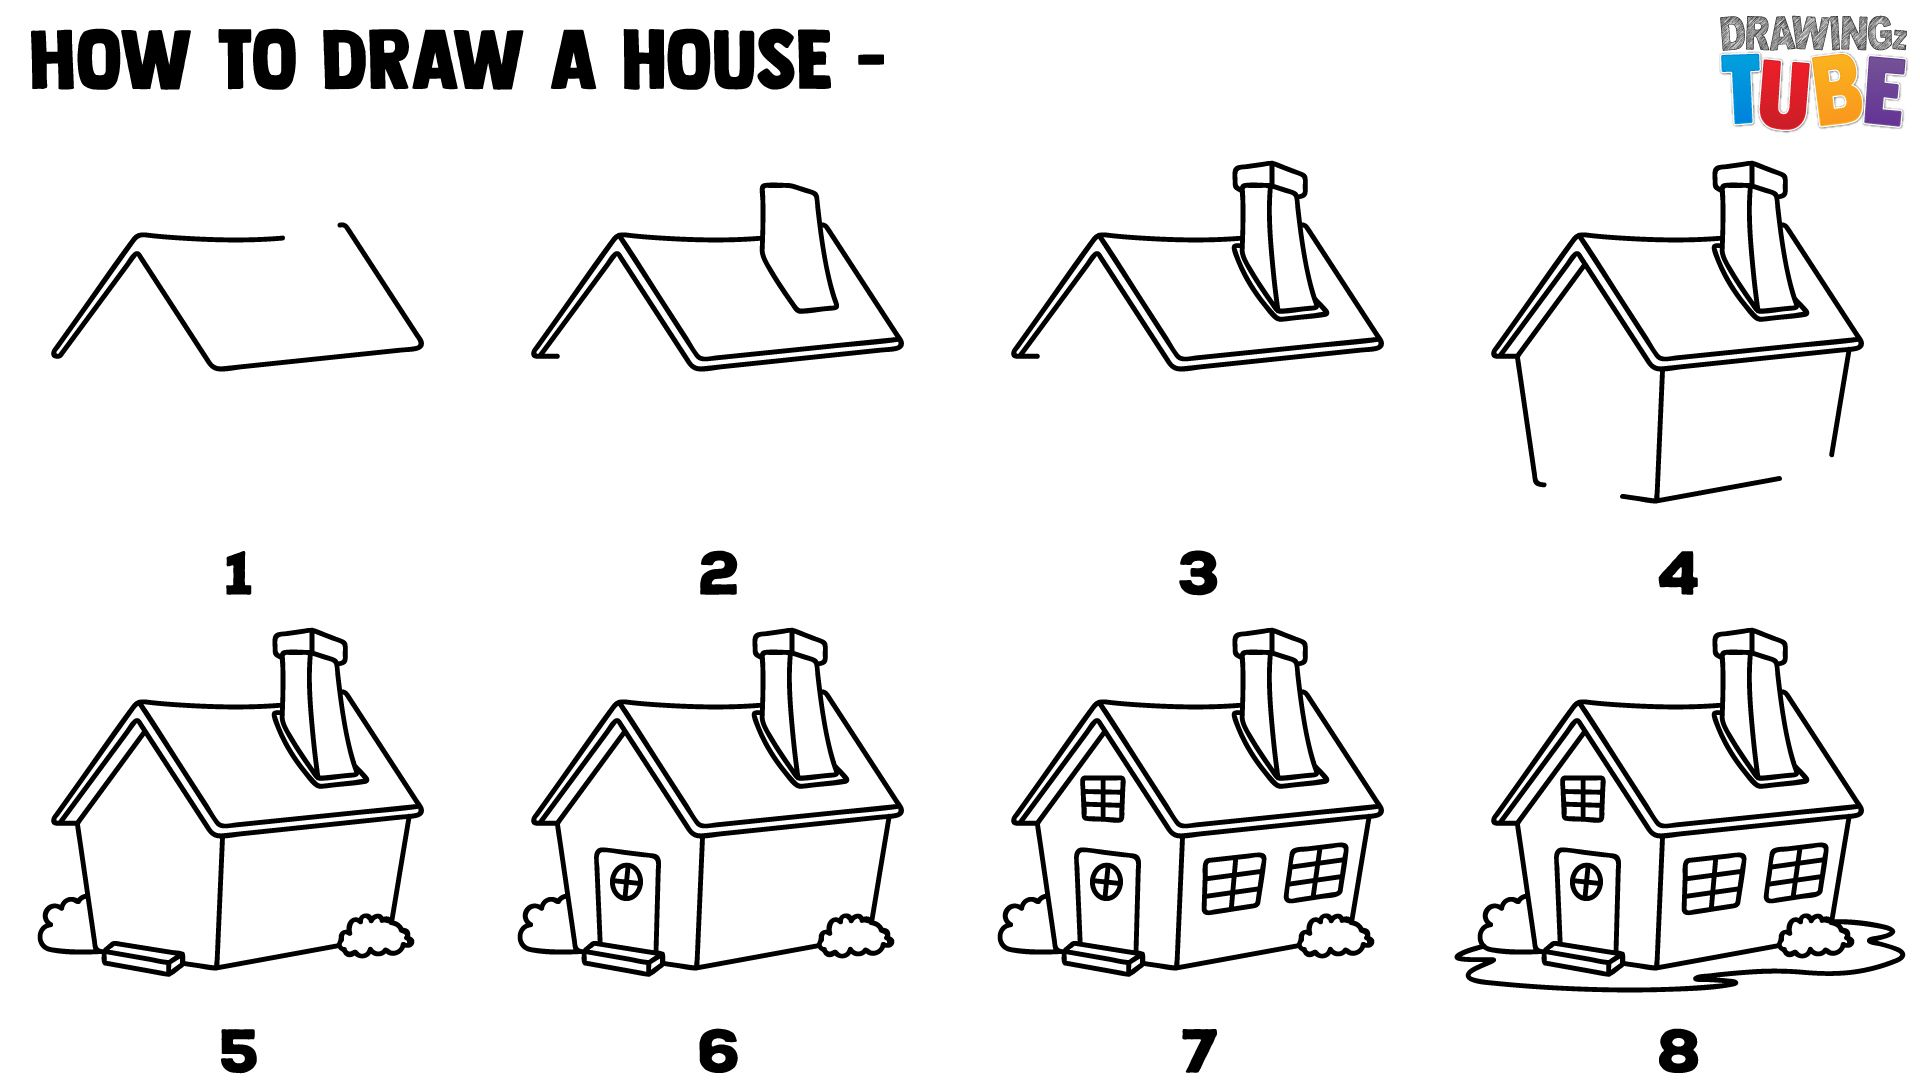 How To Draw A House Step By Step For Kids Easy